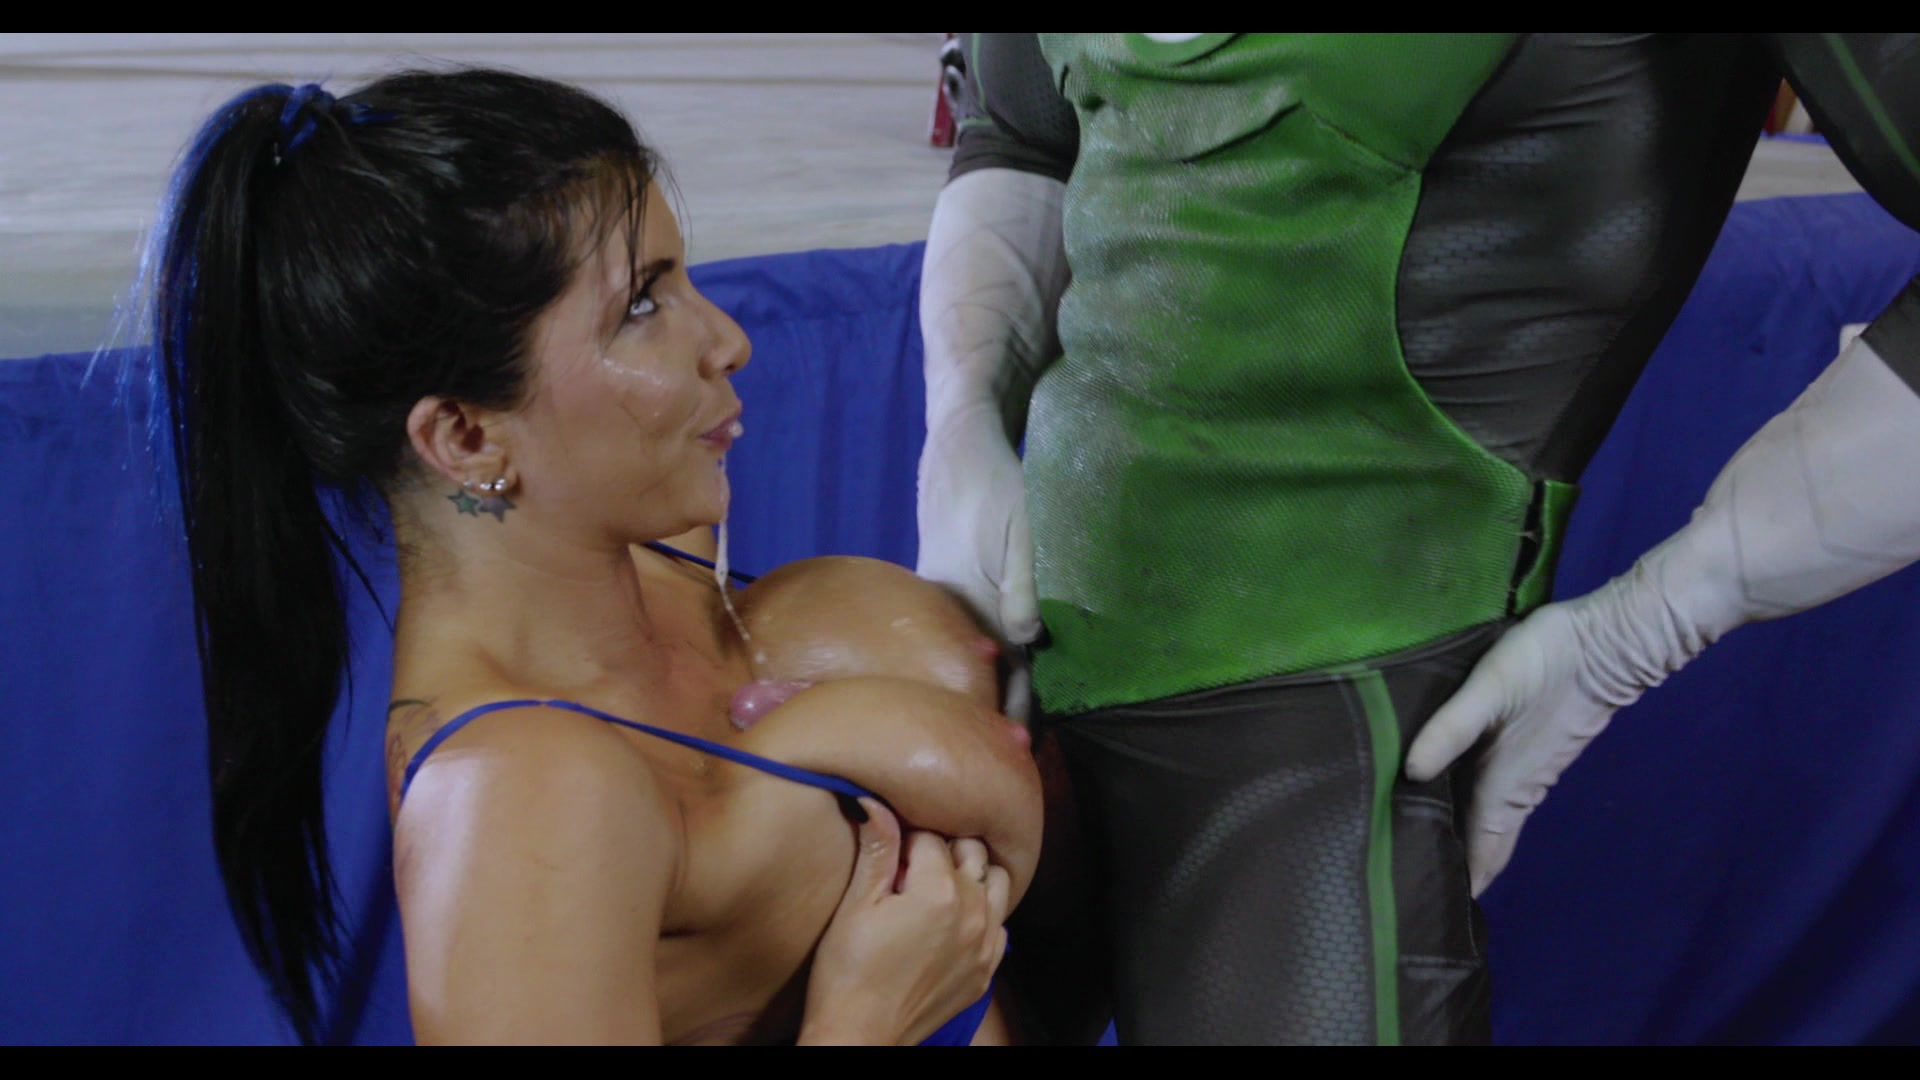 Scene with Xander Corvus and Romi Rain - image 12 out of 20